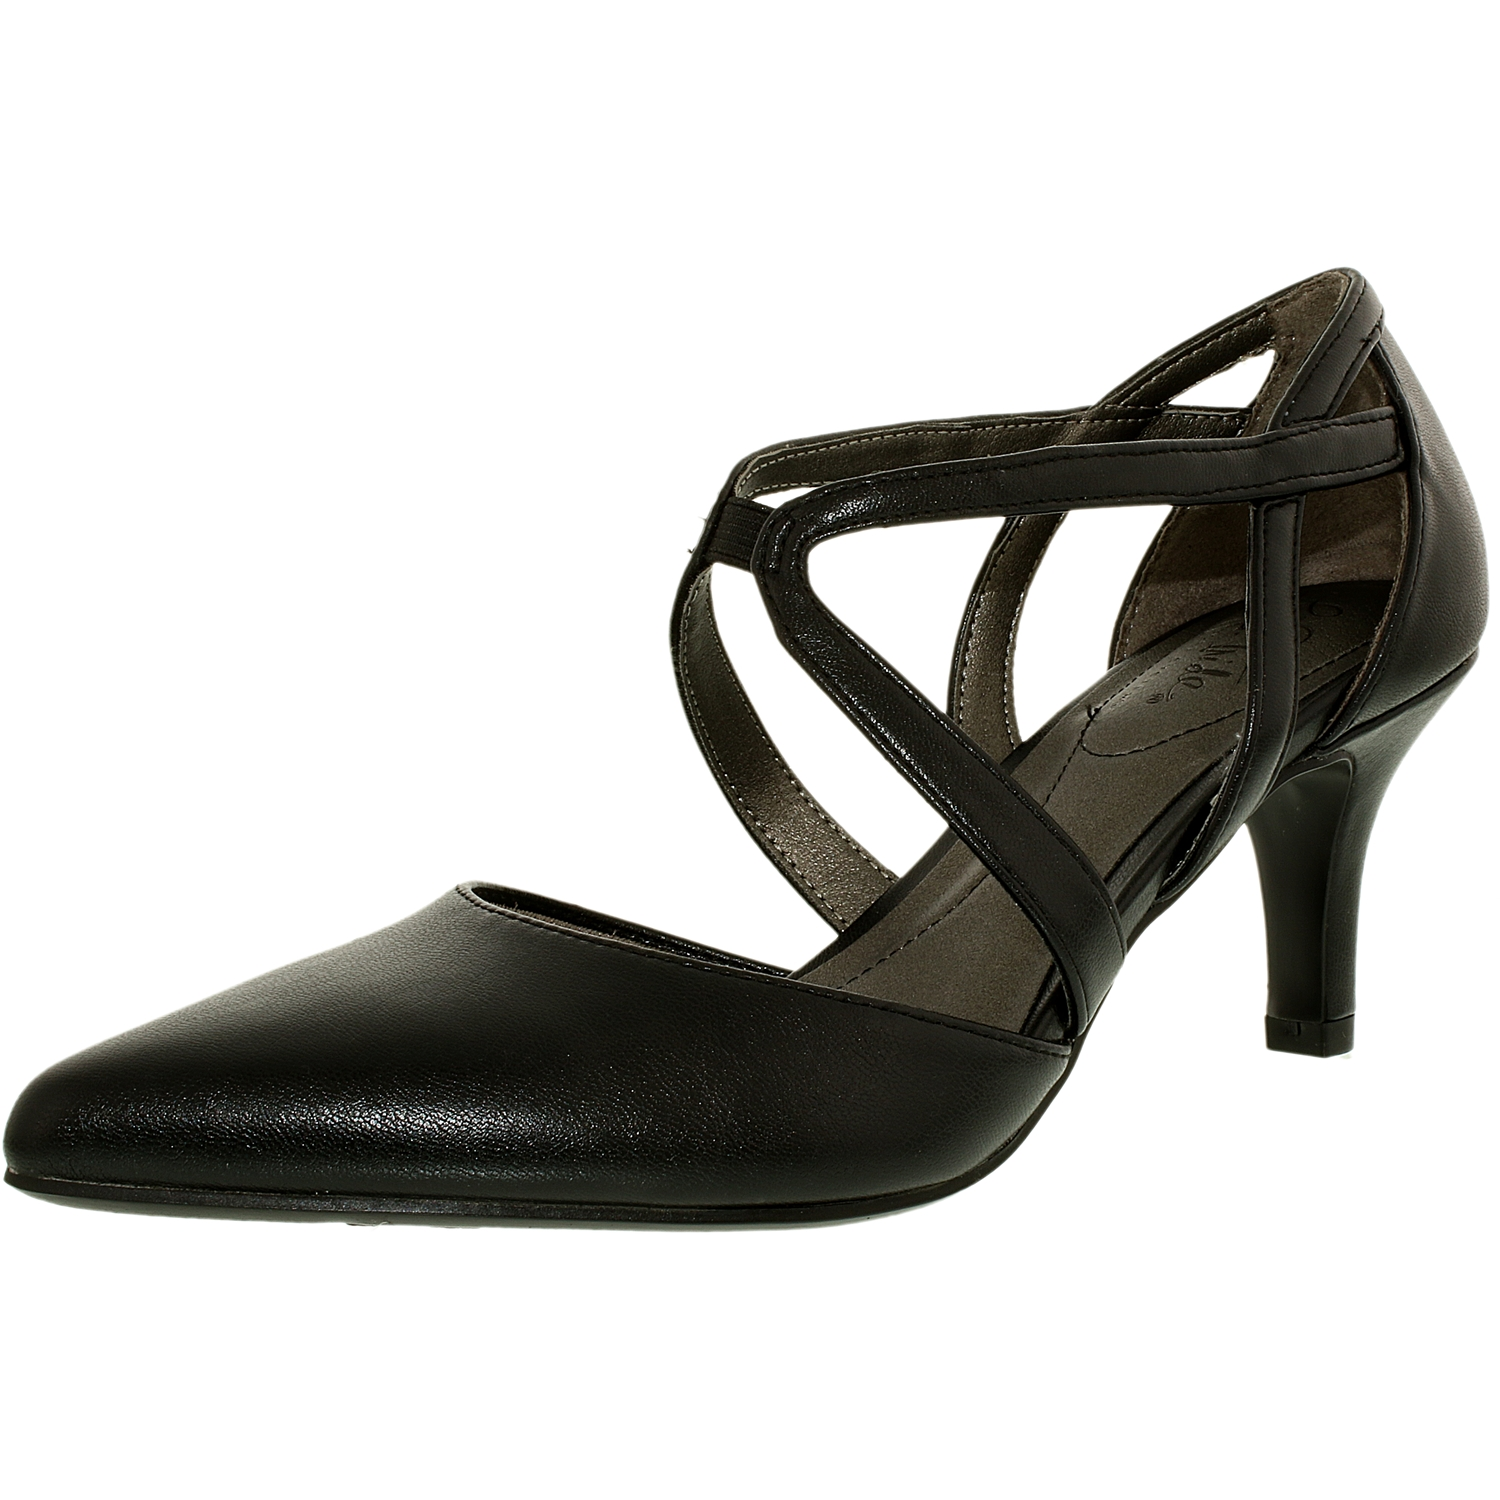 Lifestride Women's Seamless Leather Ankle-High Leather Pump